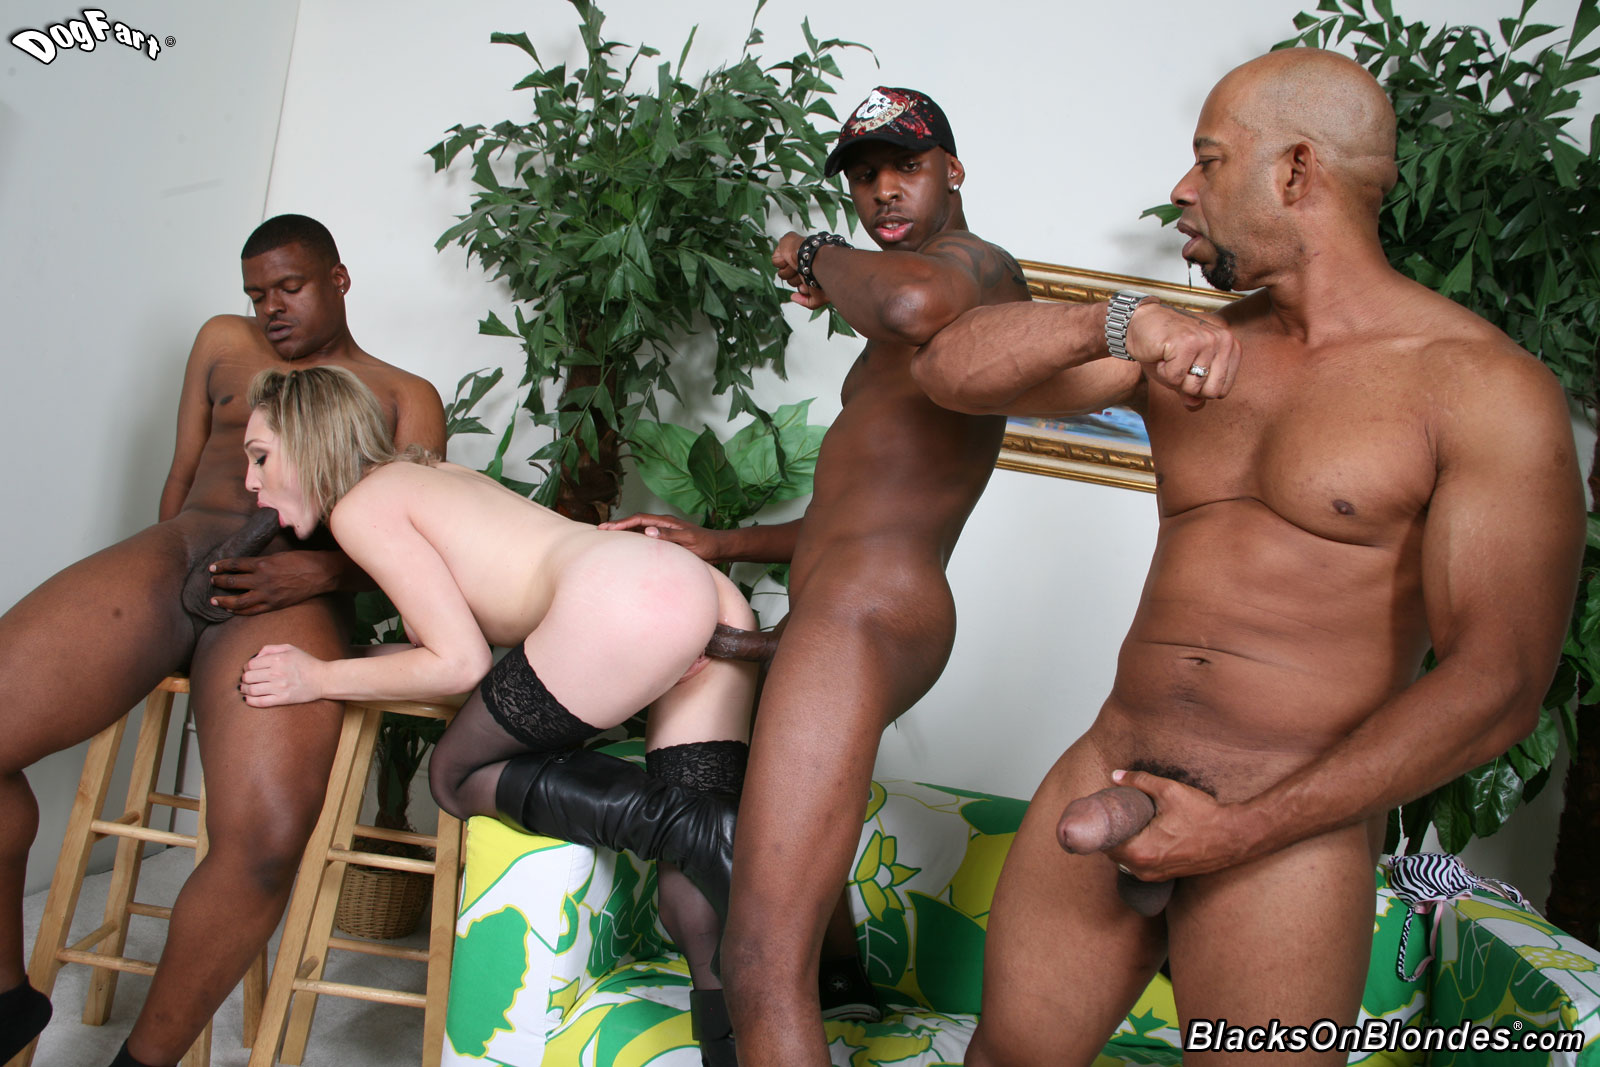 gangbang o face - Slim bitch in black nylons and mini skirt milks two juicy cocks and gets  her face cum covered